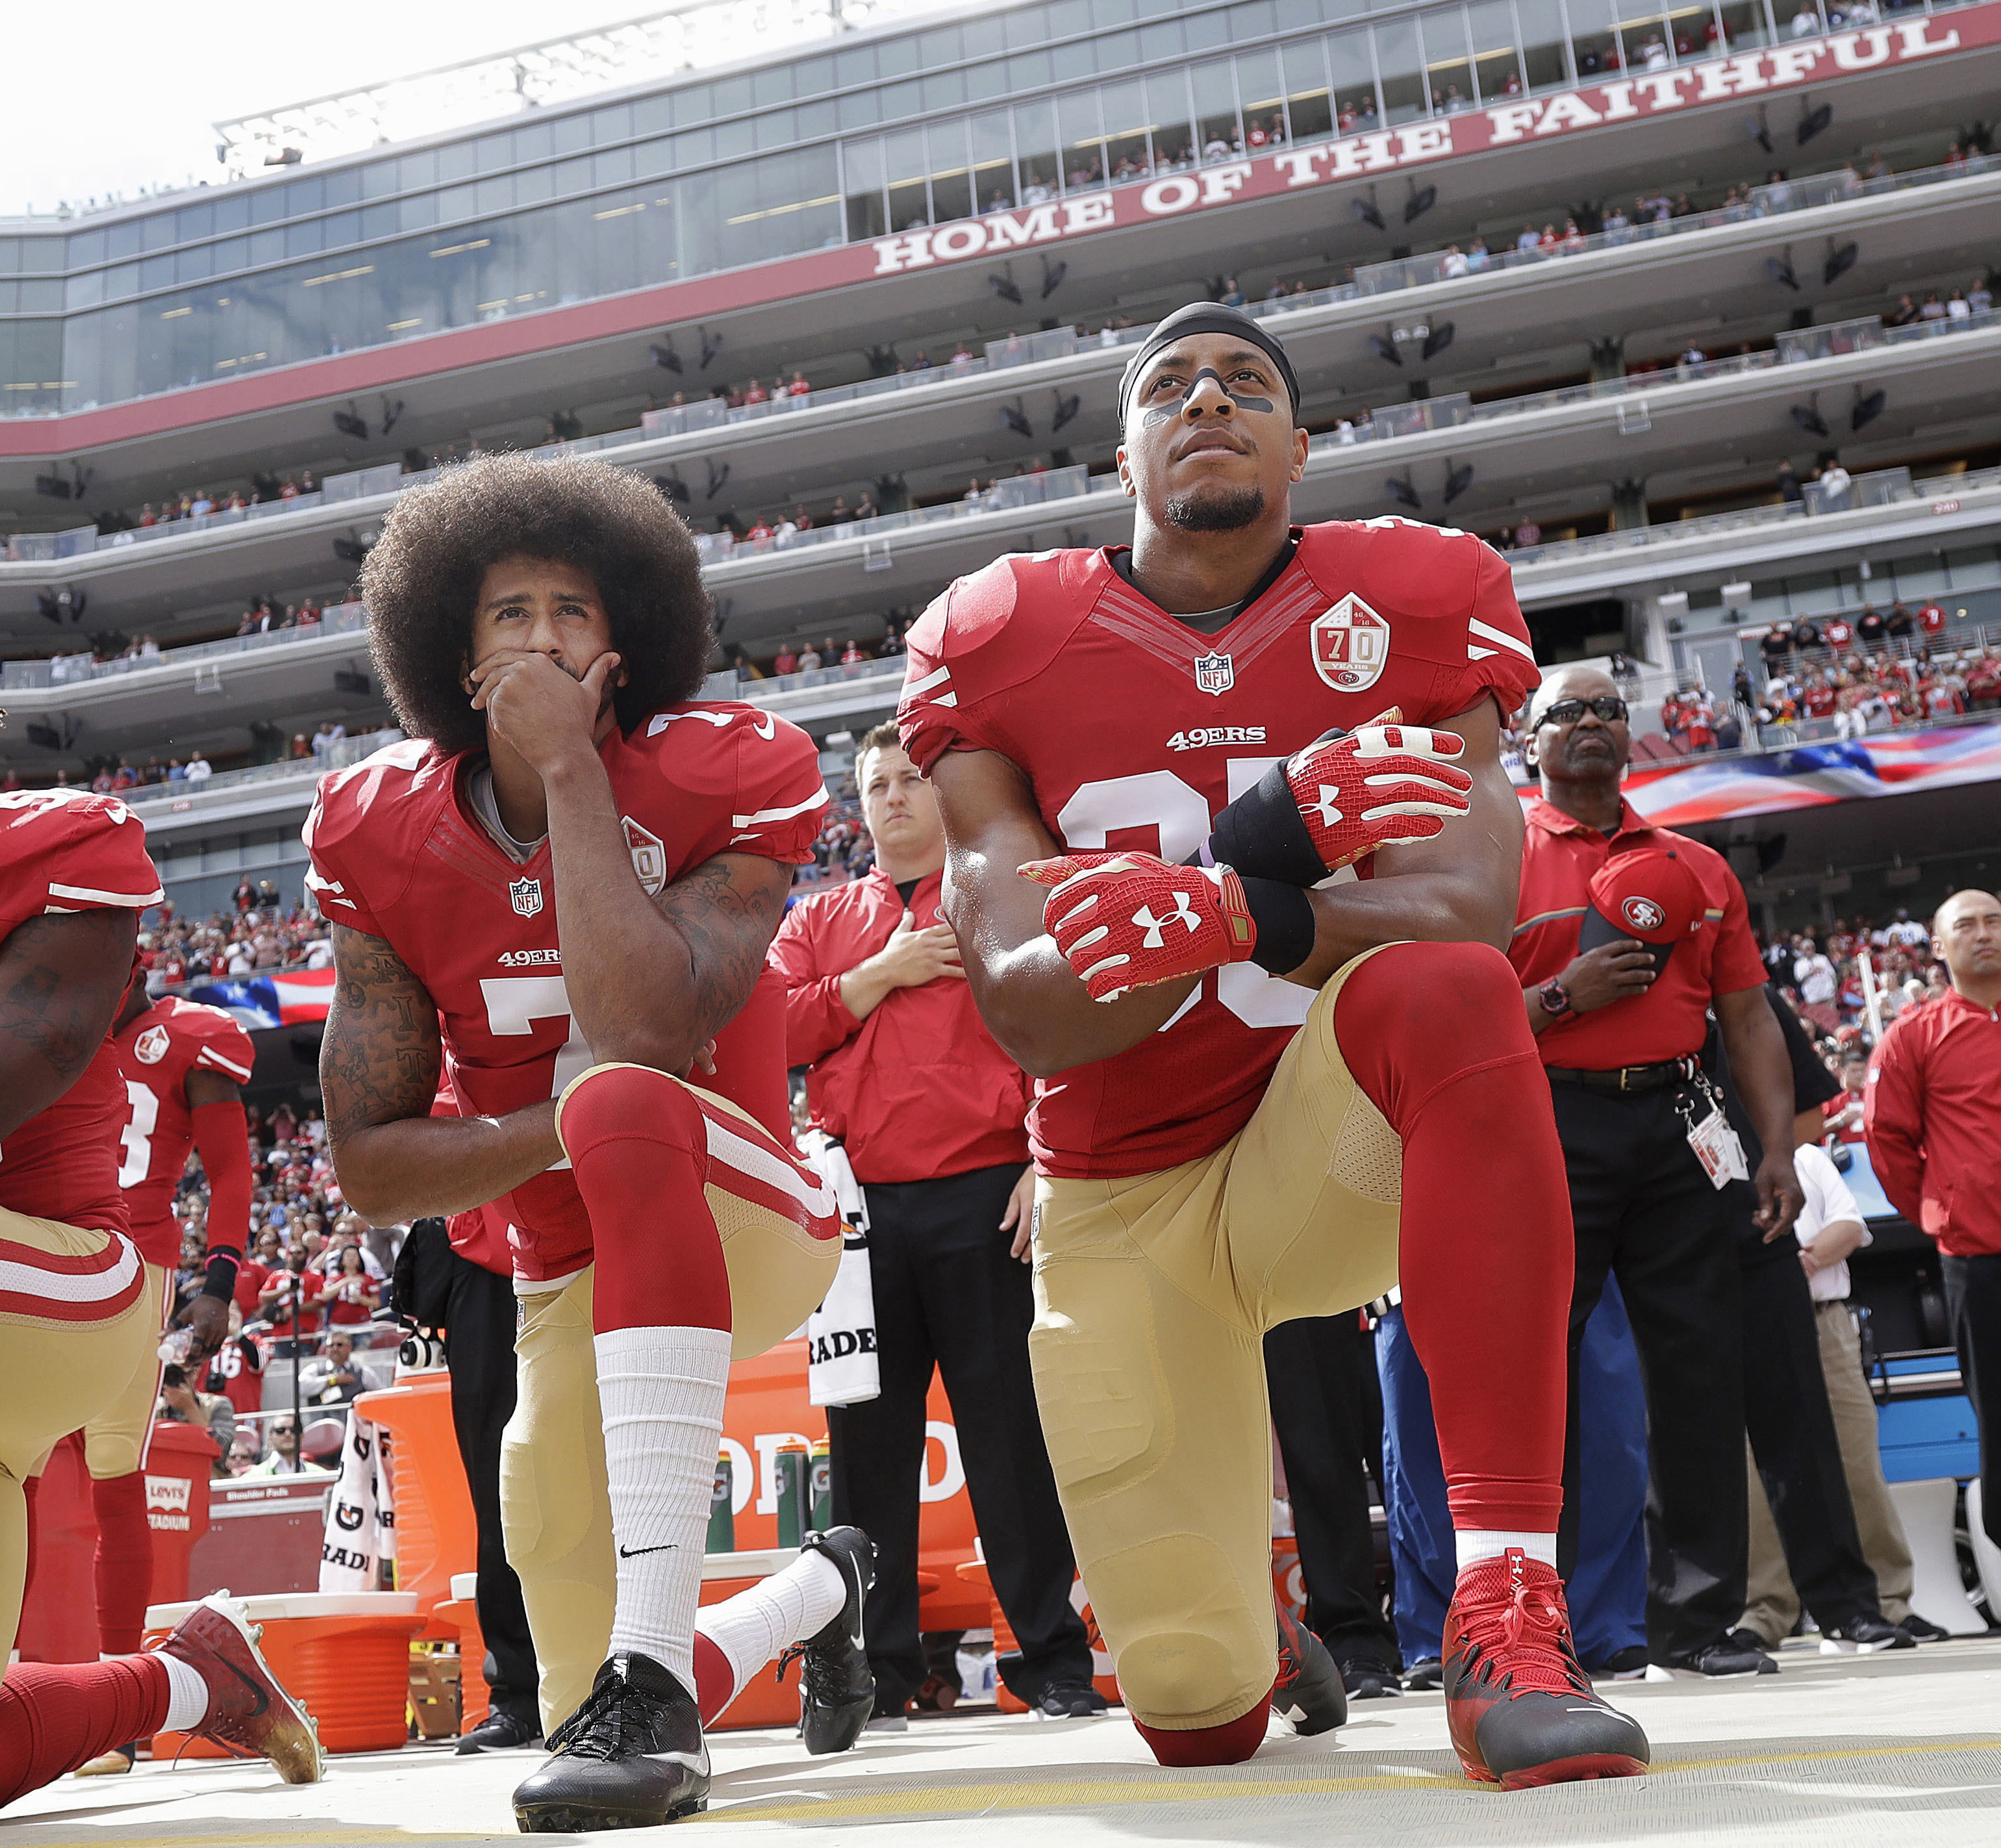 San Francisco safety Eric Reid (right) kneels next to former 49ers quarterback Colin Kaepernick during the national anthem before a game last season. (AP Photo/Marcio Jose Sanchez)